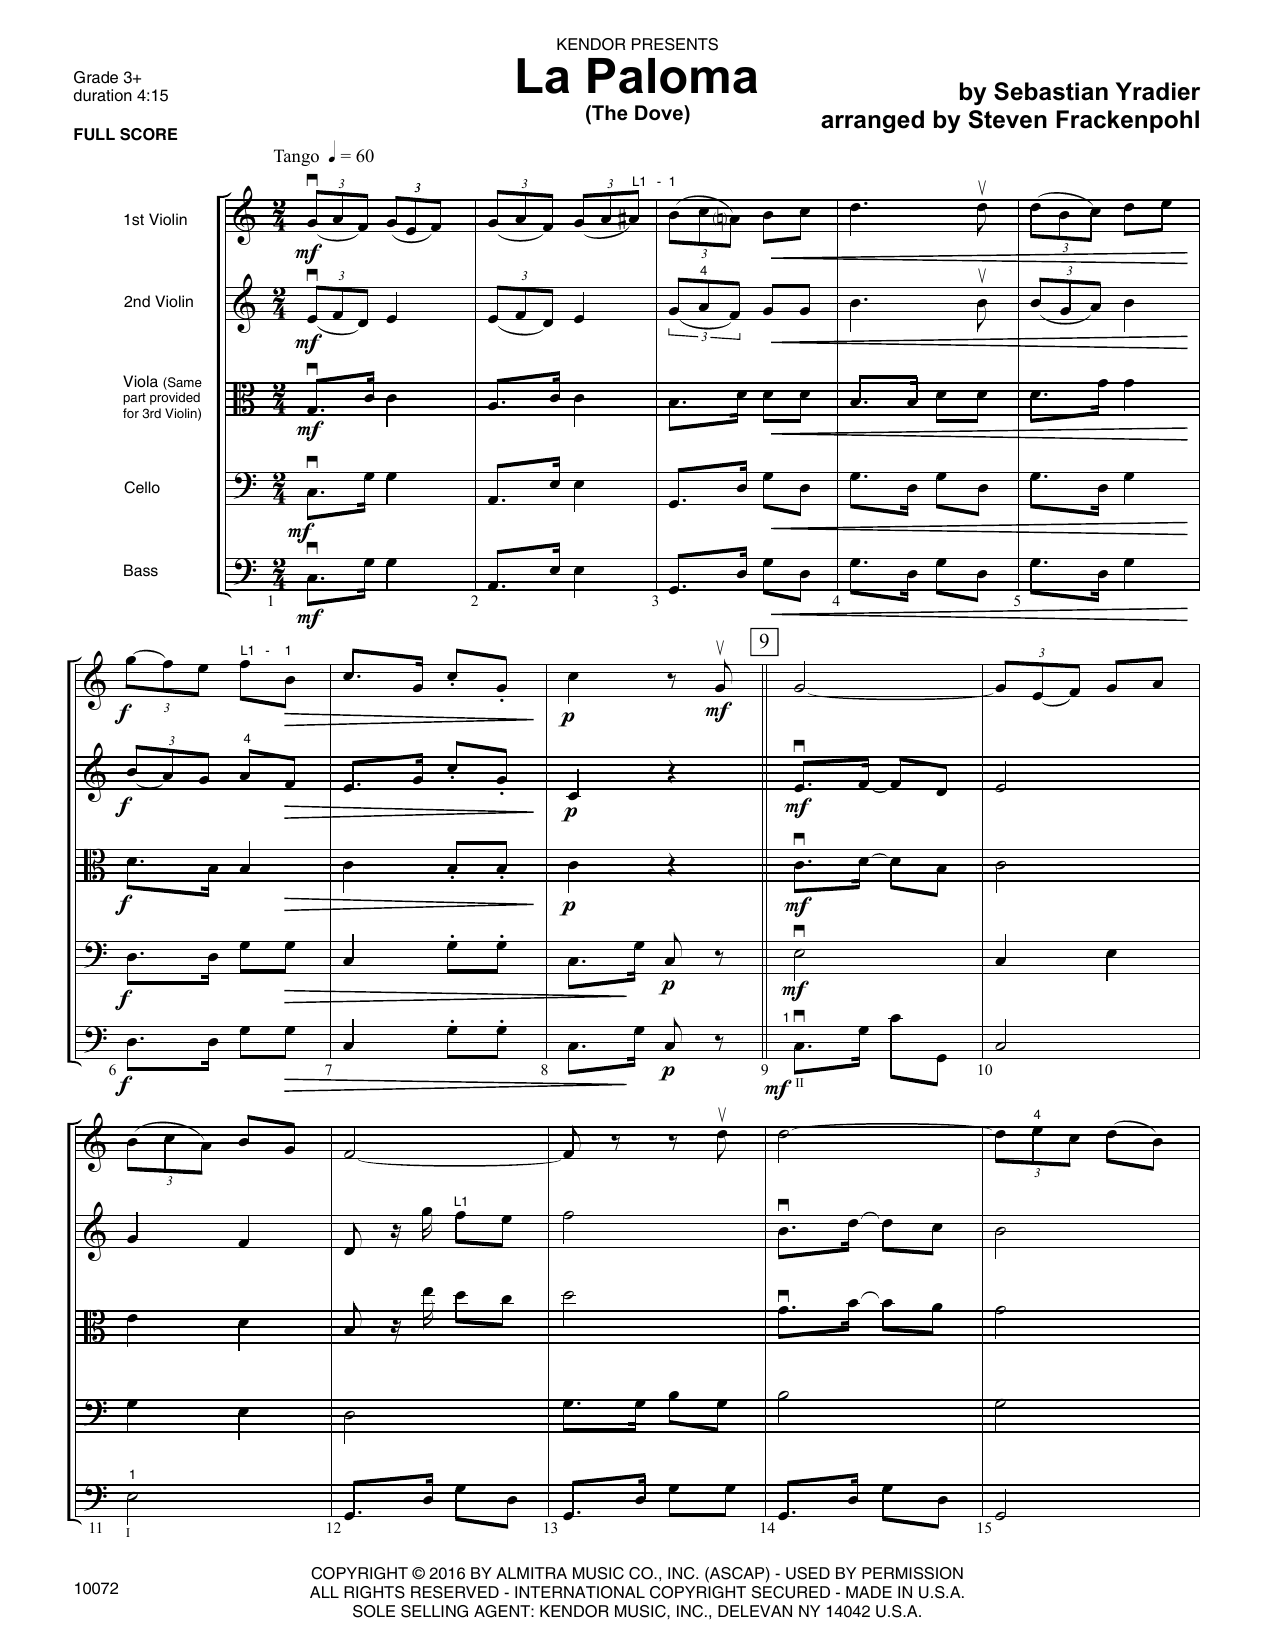 La Paloma (The Dove) (COMPLETE) sheet music for orchestra by Steve Frackenpohl and Sebastian Yradier. Score Image Preview.